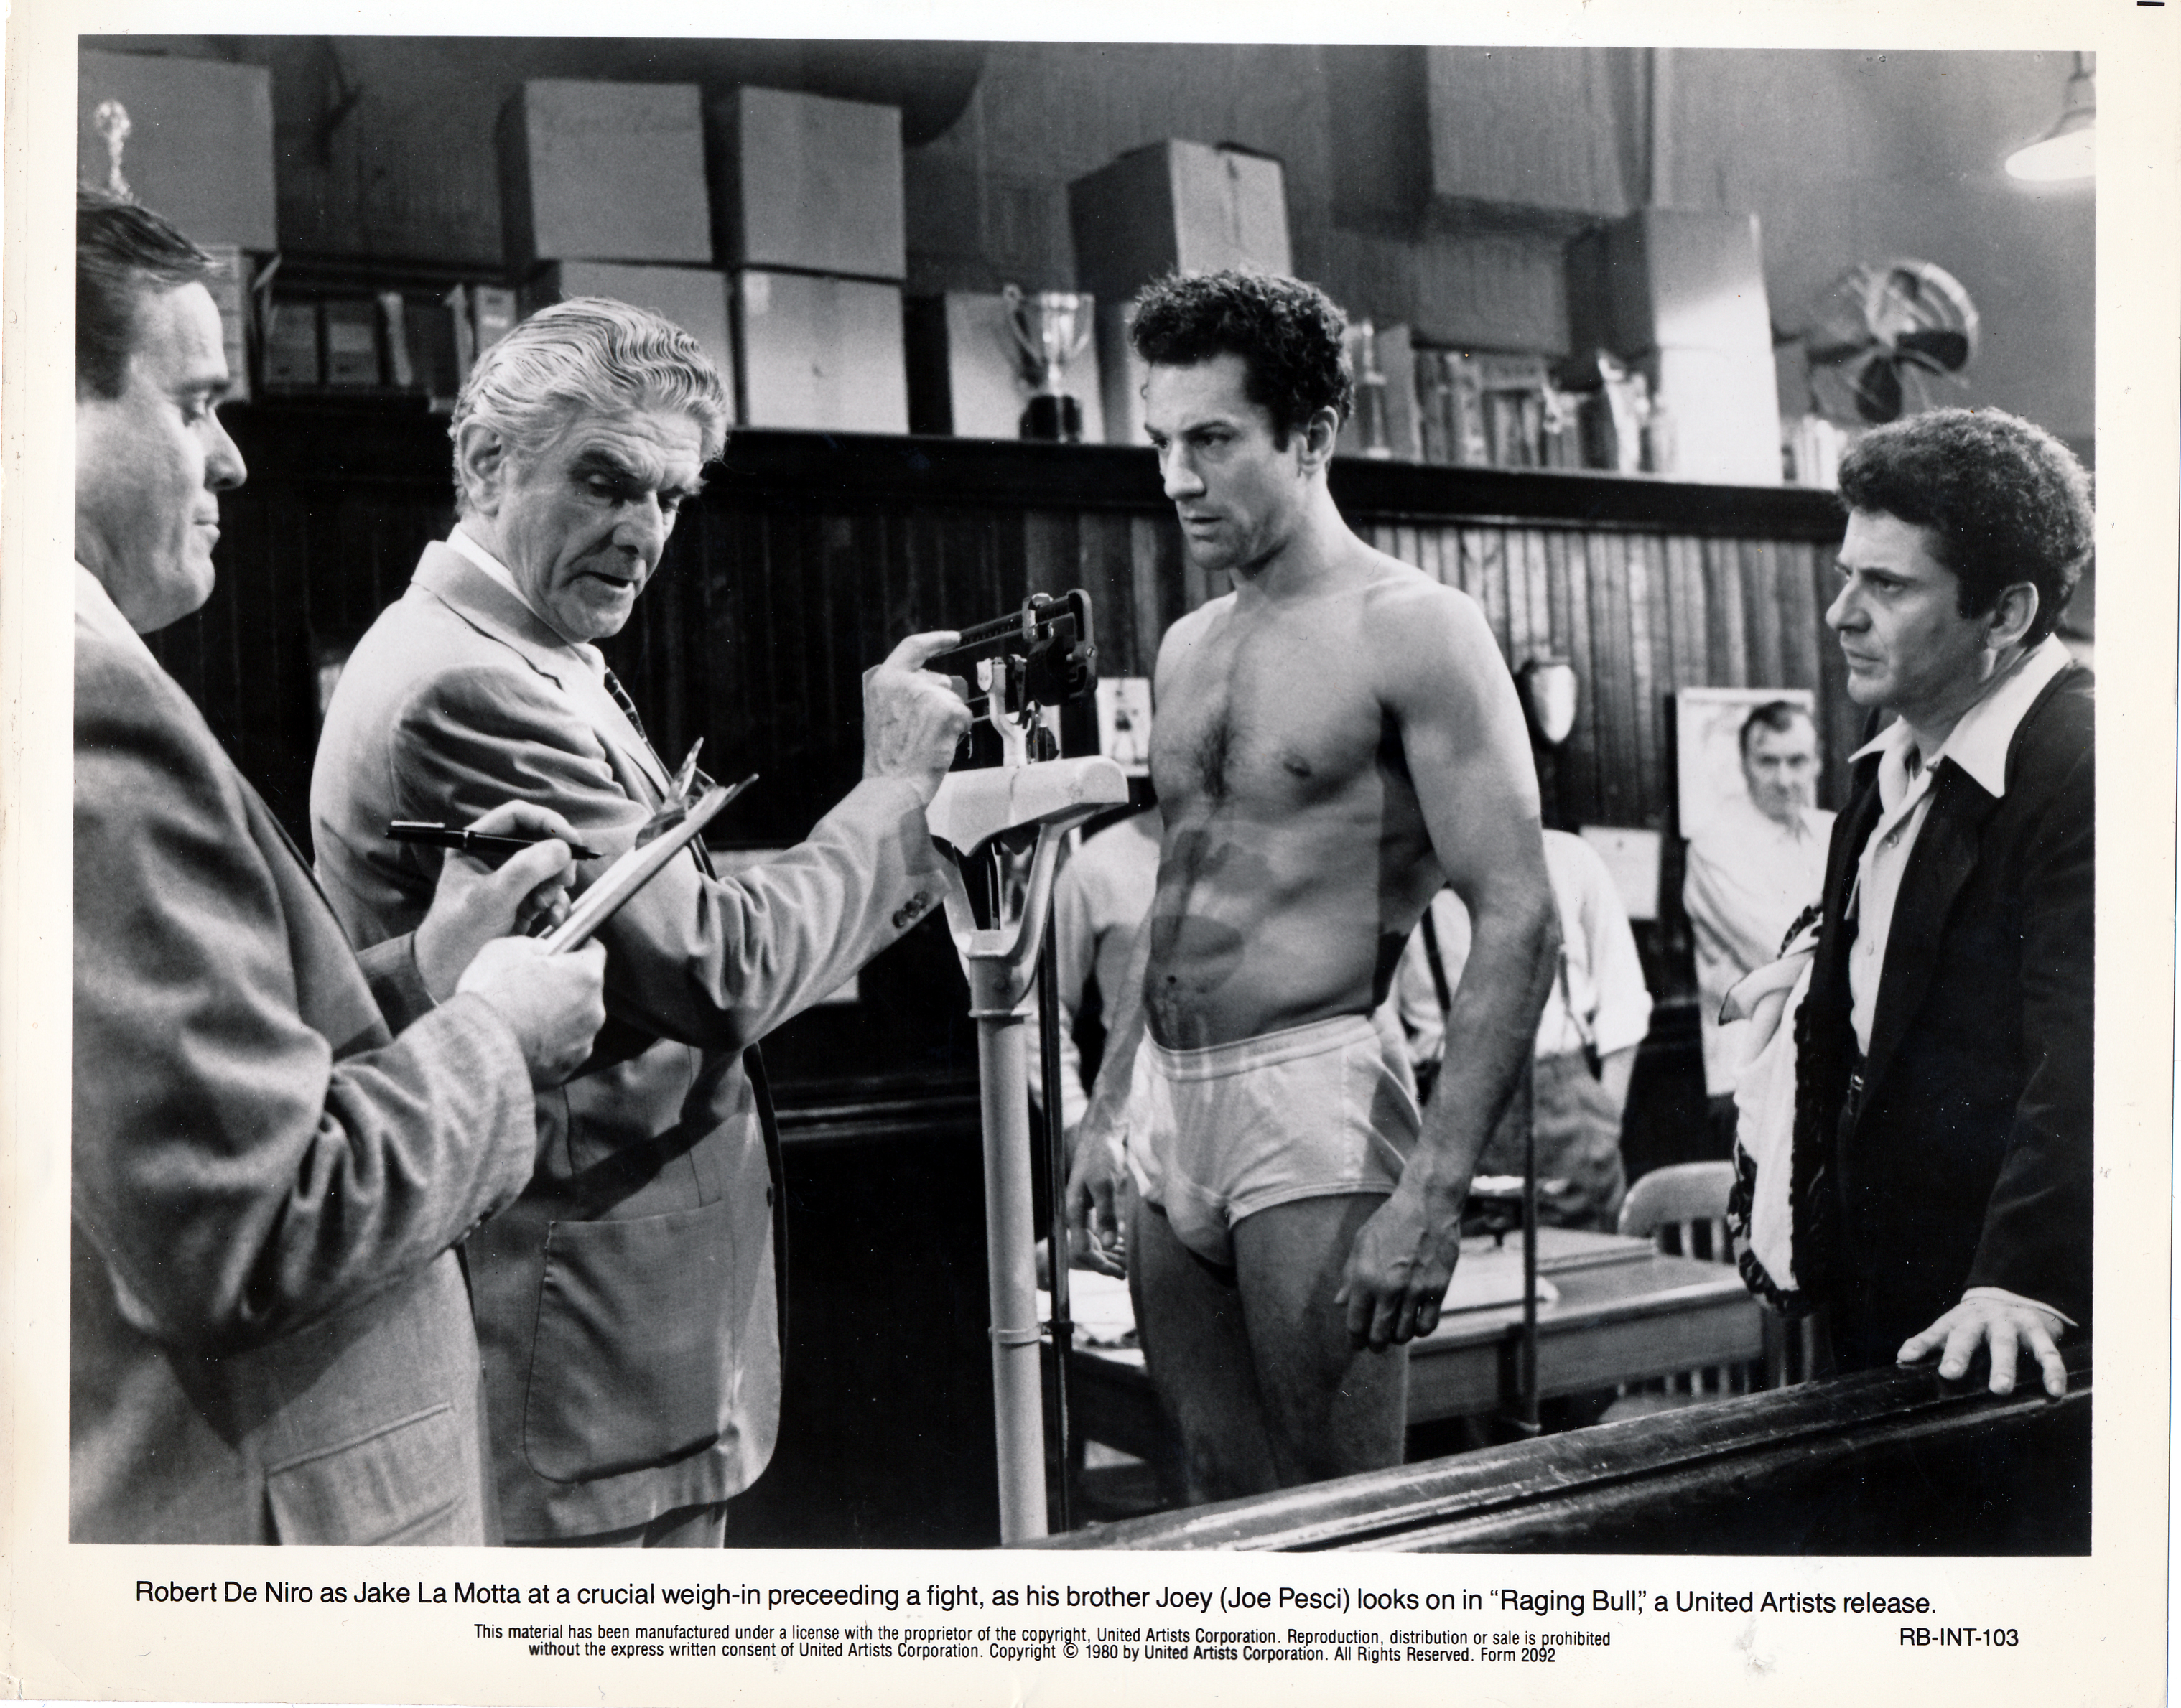 Pictured is a US promotional black-and-white still for the 1980 Martin Scorcese film Raging Bull starring Robert DeNiro.